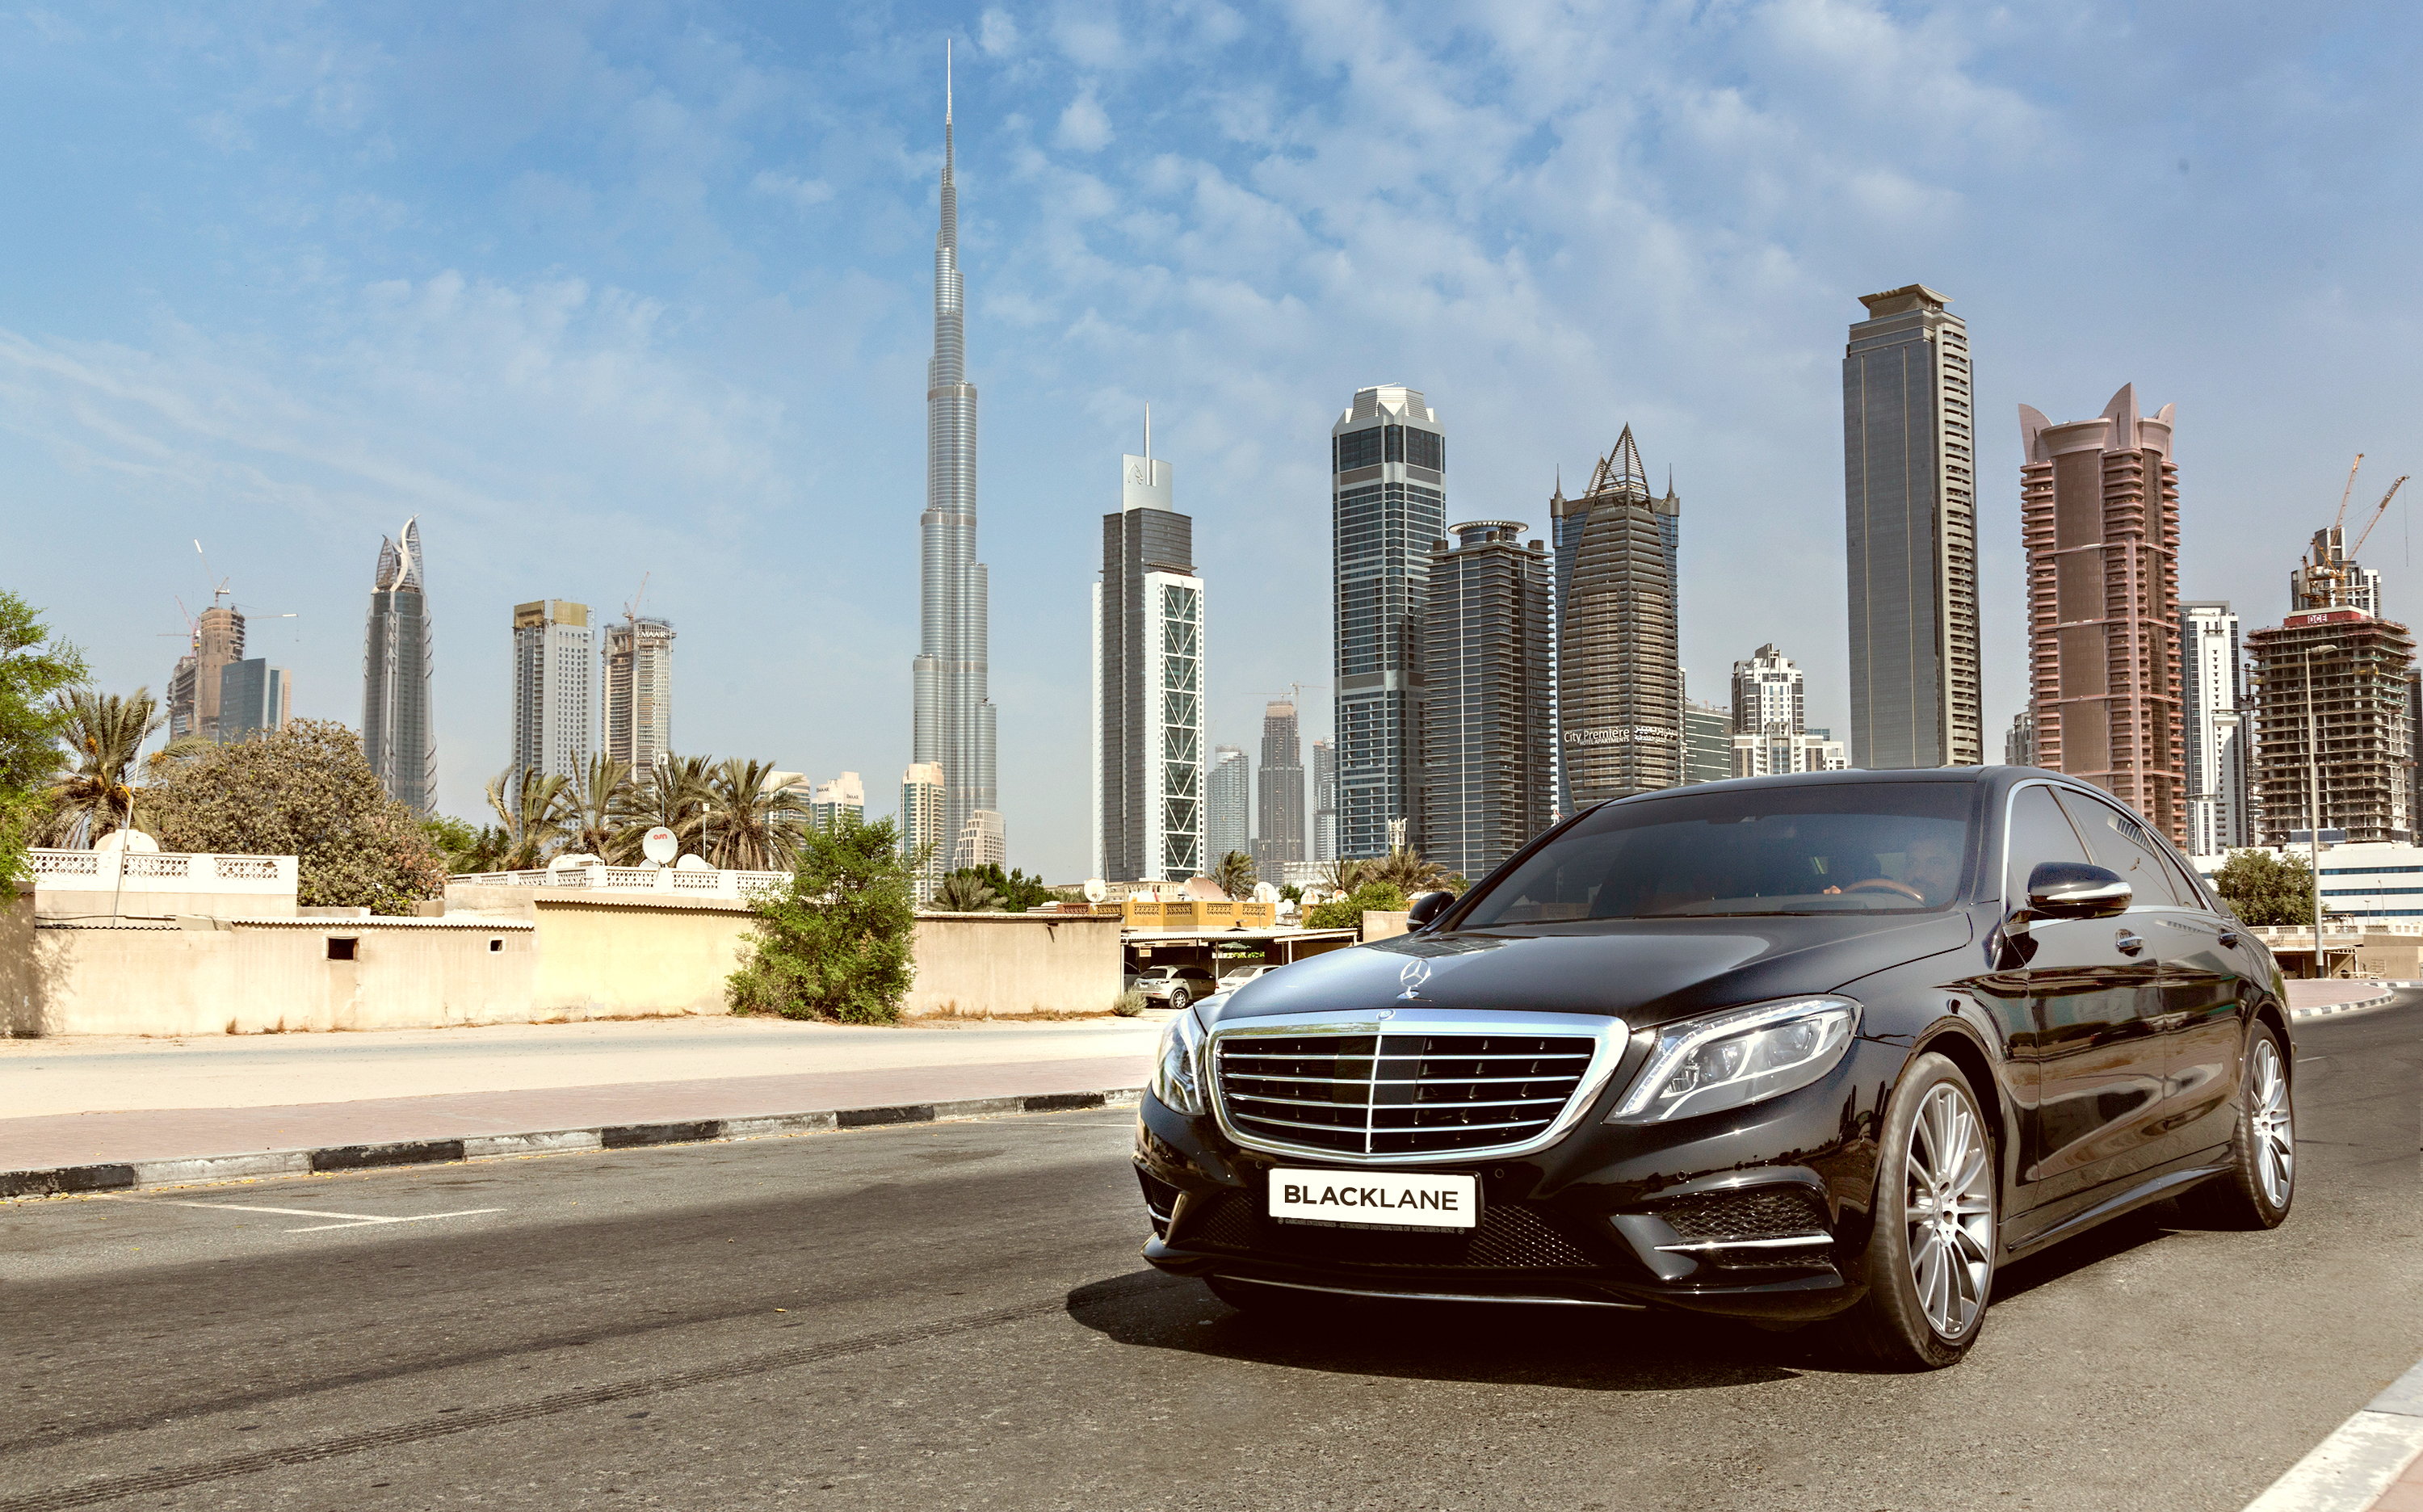 Blacklane_10_shoot_10_dubai_7_EBV.jpg